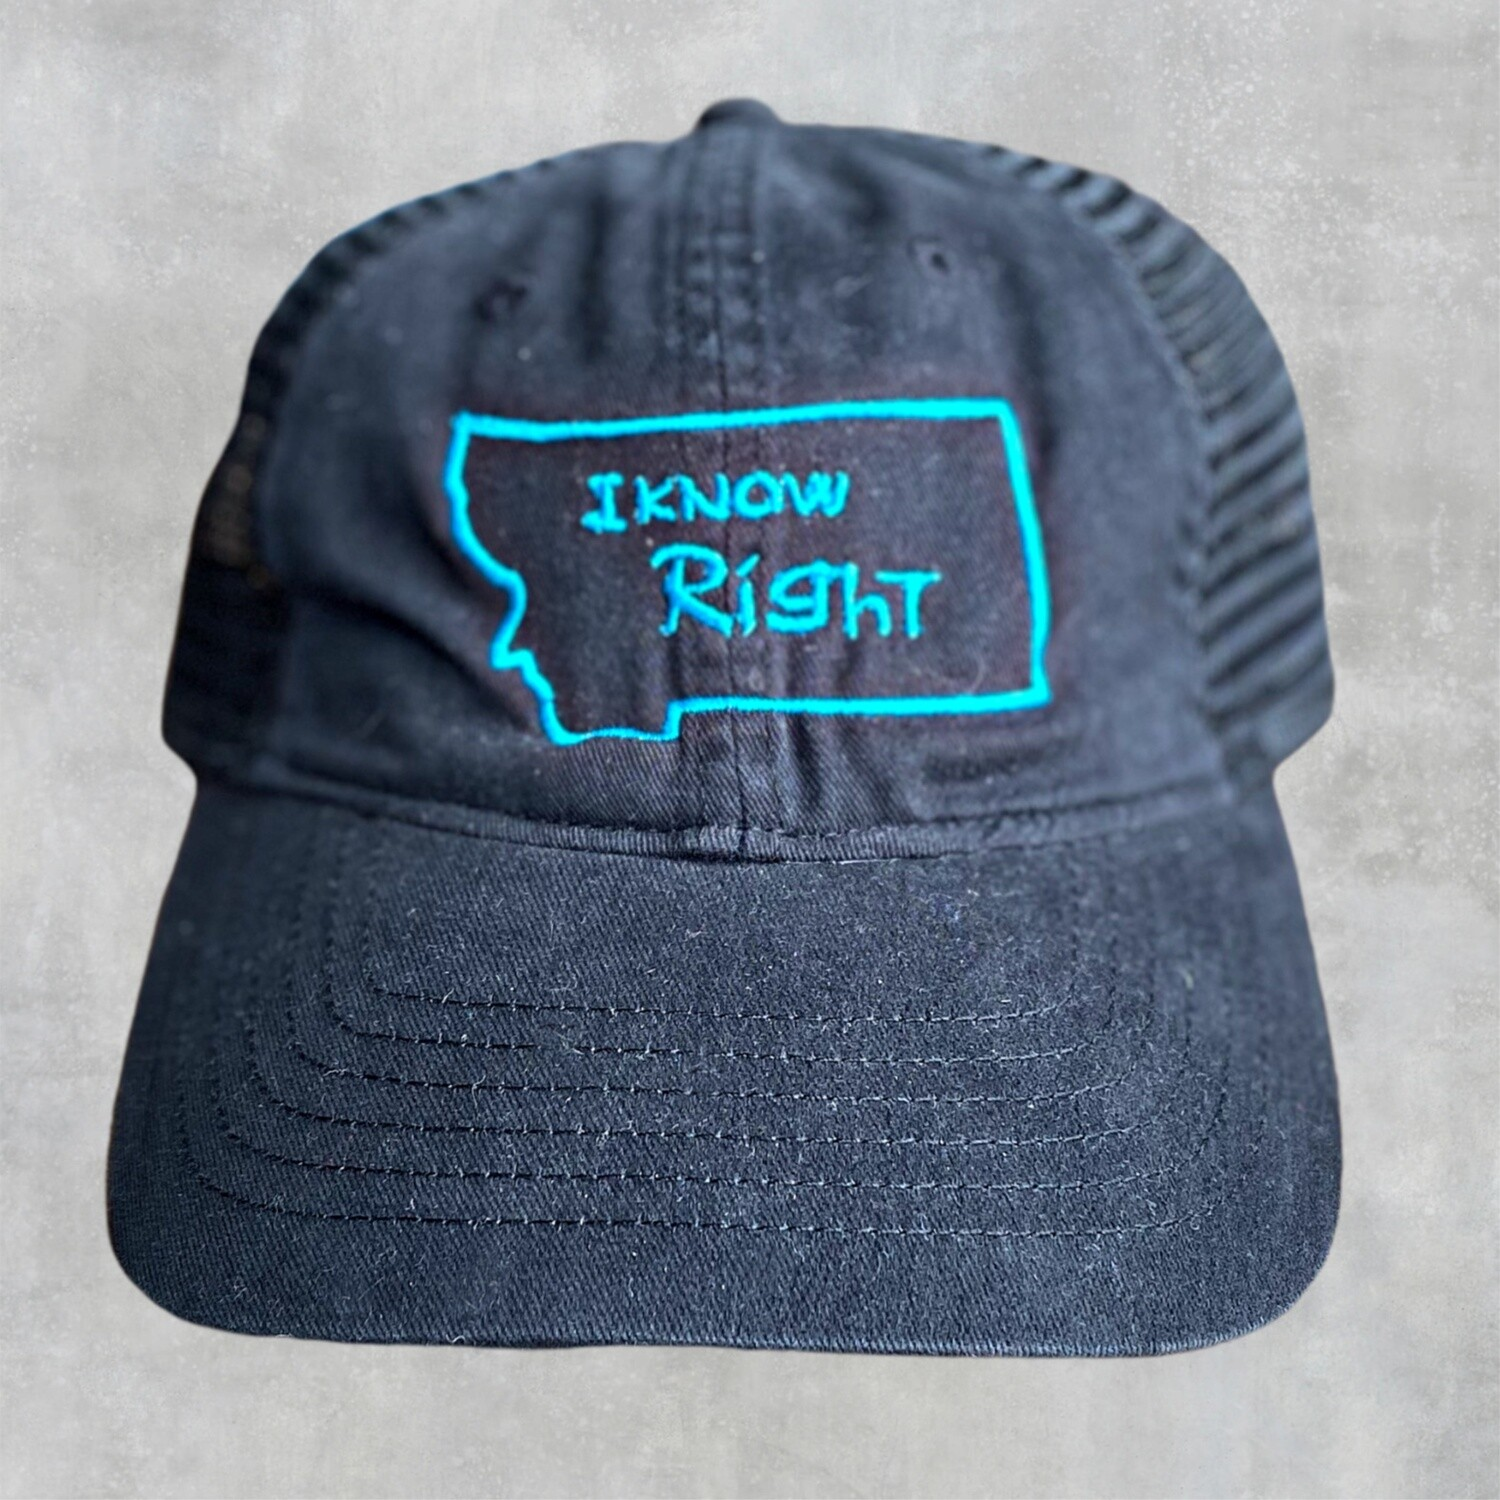 I Know Right - Black w/ Blue Embroidery